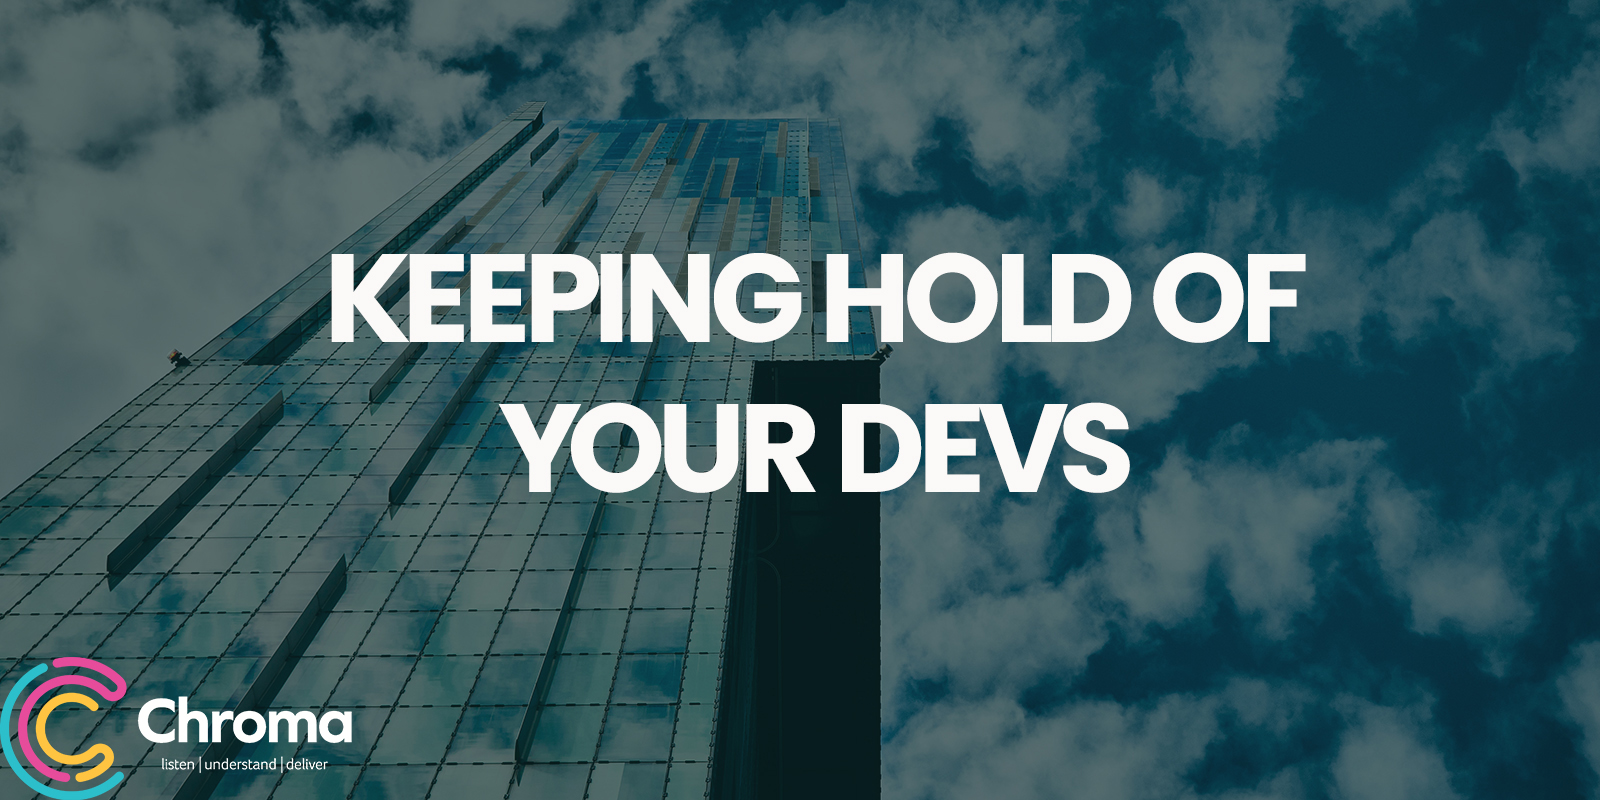 Keeping Hold of your Devs